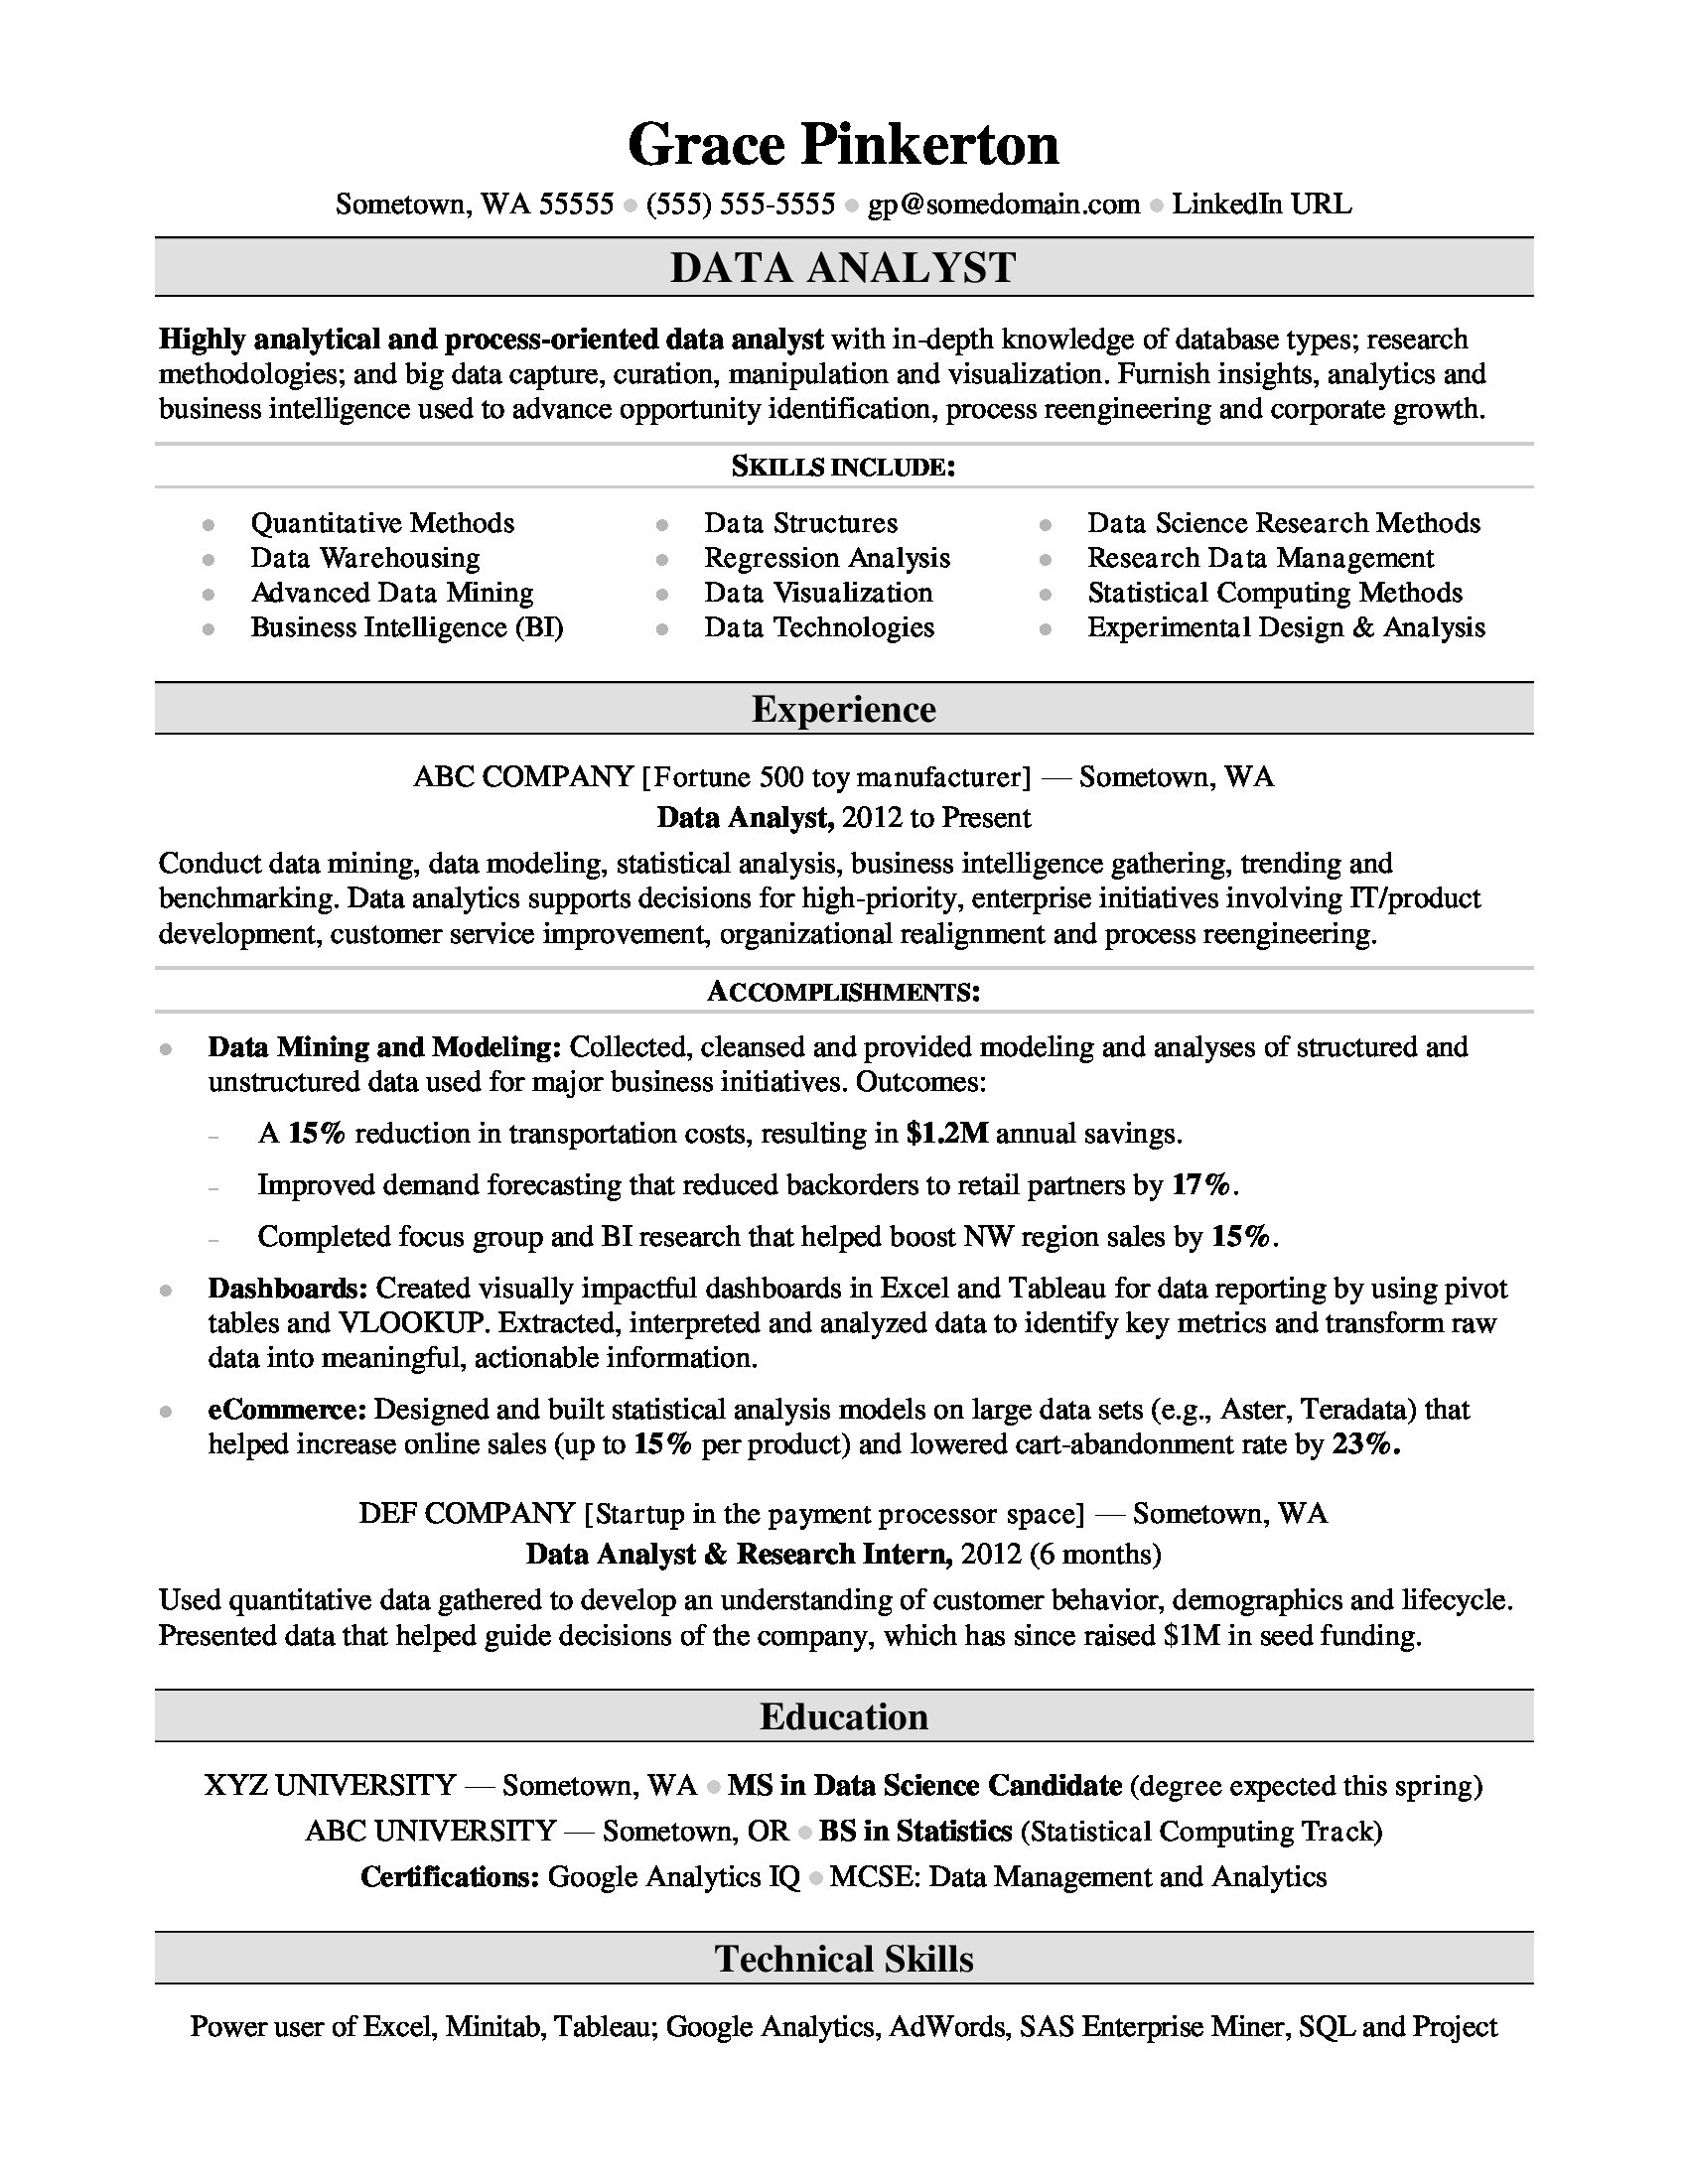 Data Analyst Resume Sample | Monster com